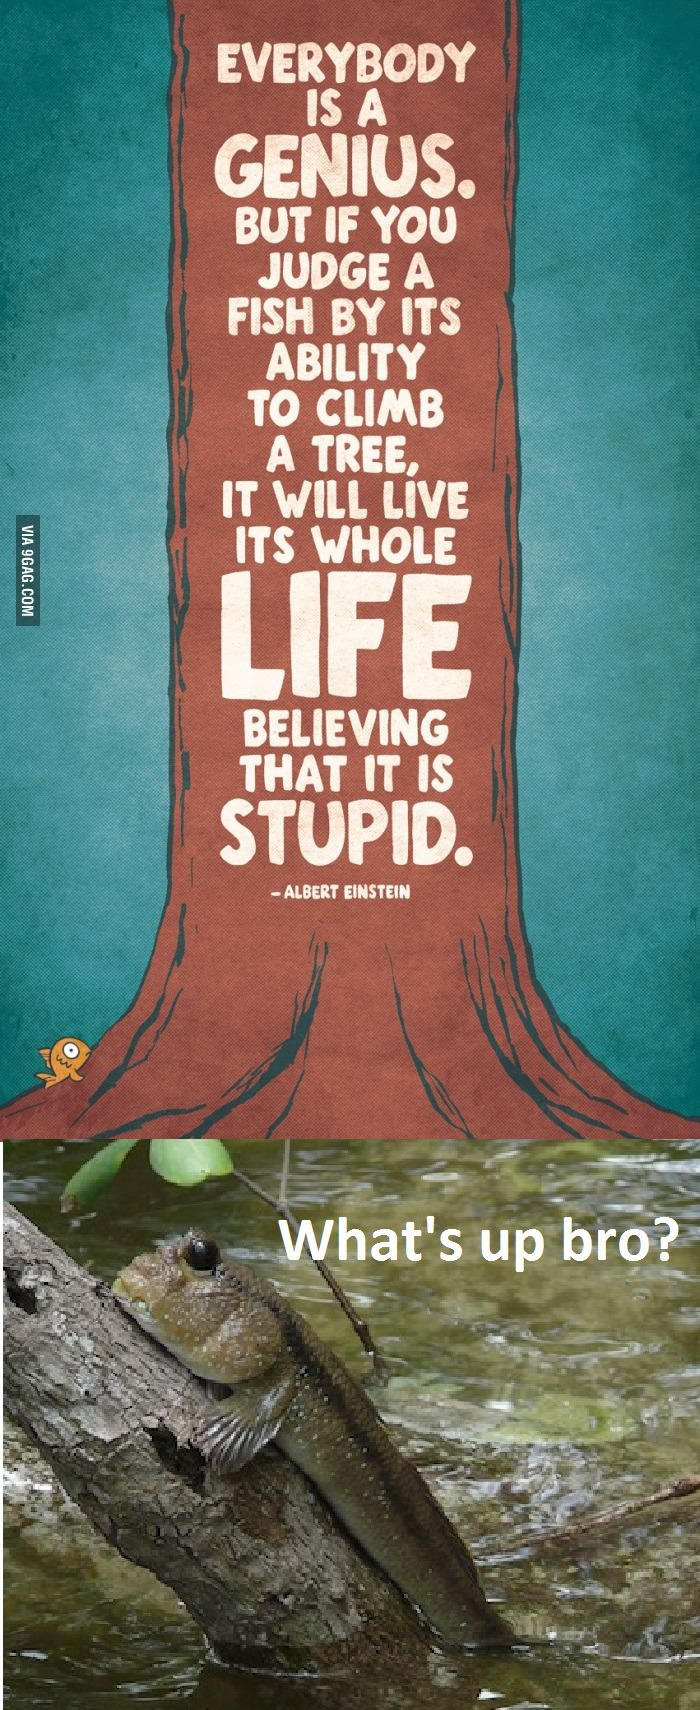 "everybody is genius. but if you judge a fish by its ability to climb a tree, it will live its whole life believing that ""it is stupid"". albert einstein"